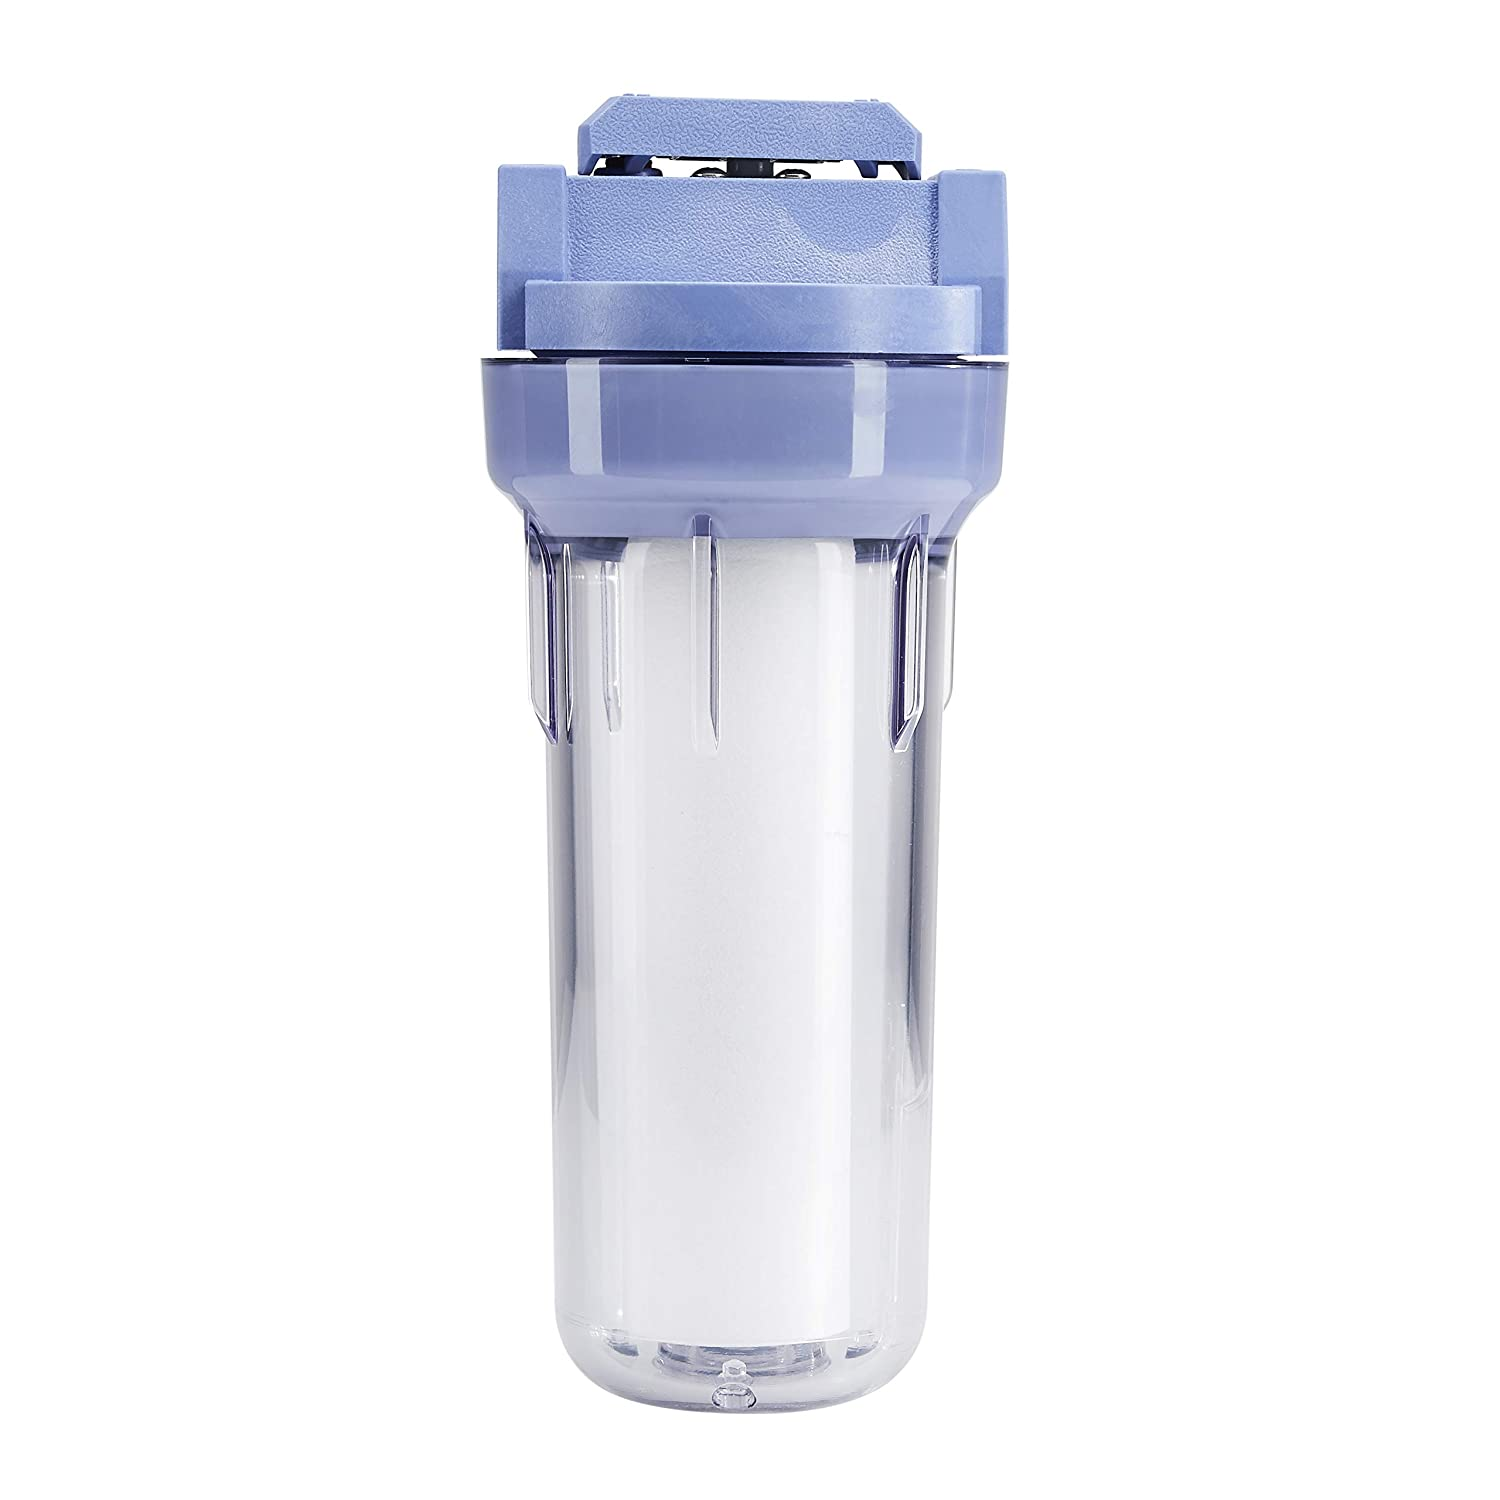 AmazonBasics Standard Duty Sump VIH Water Filter Housing - 3/4 Inch, Blue/Clear